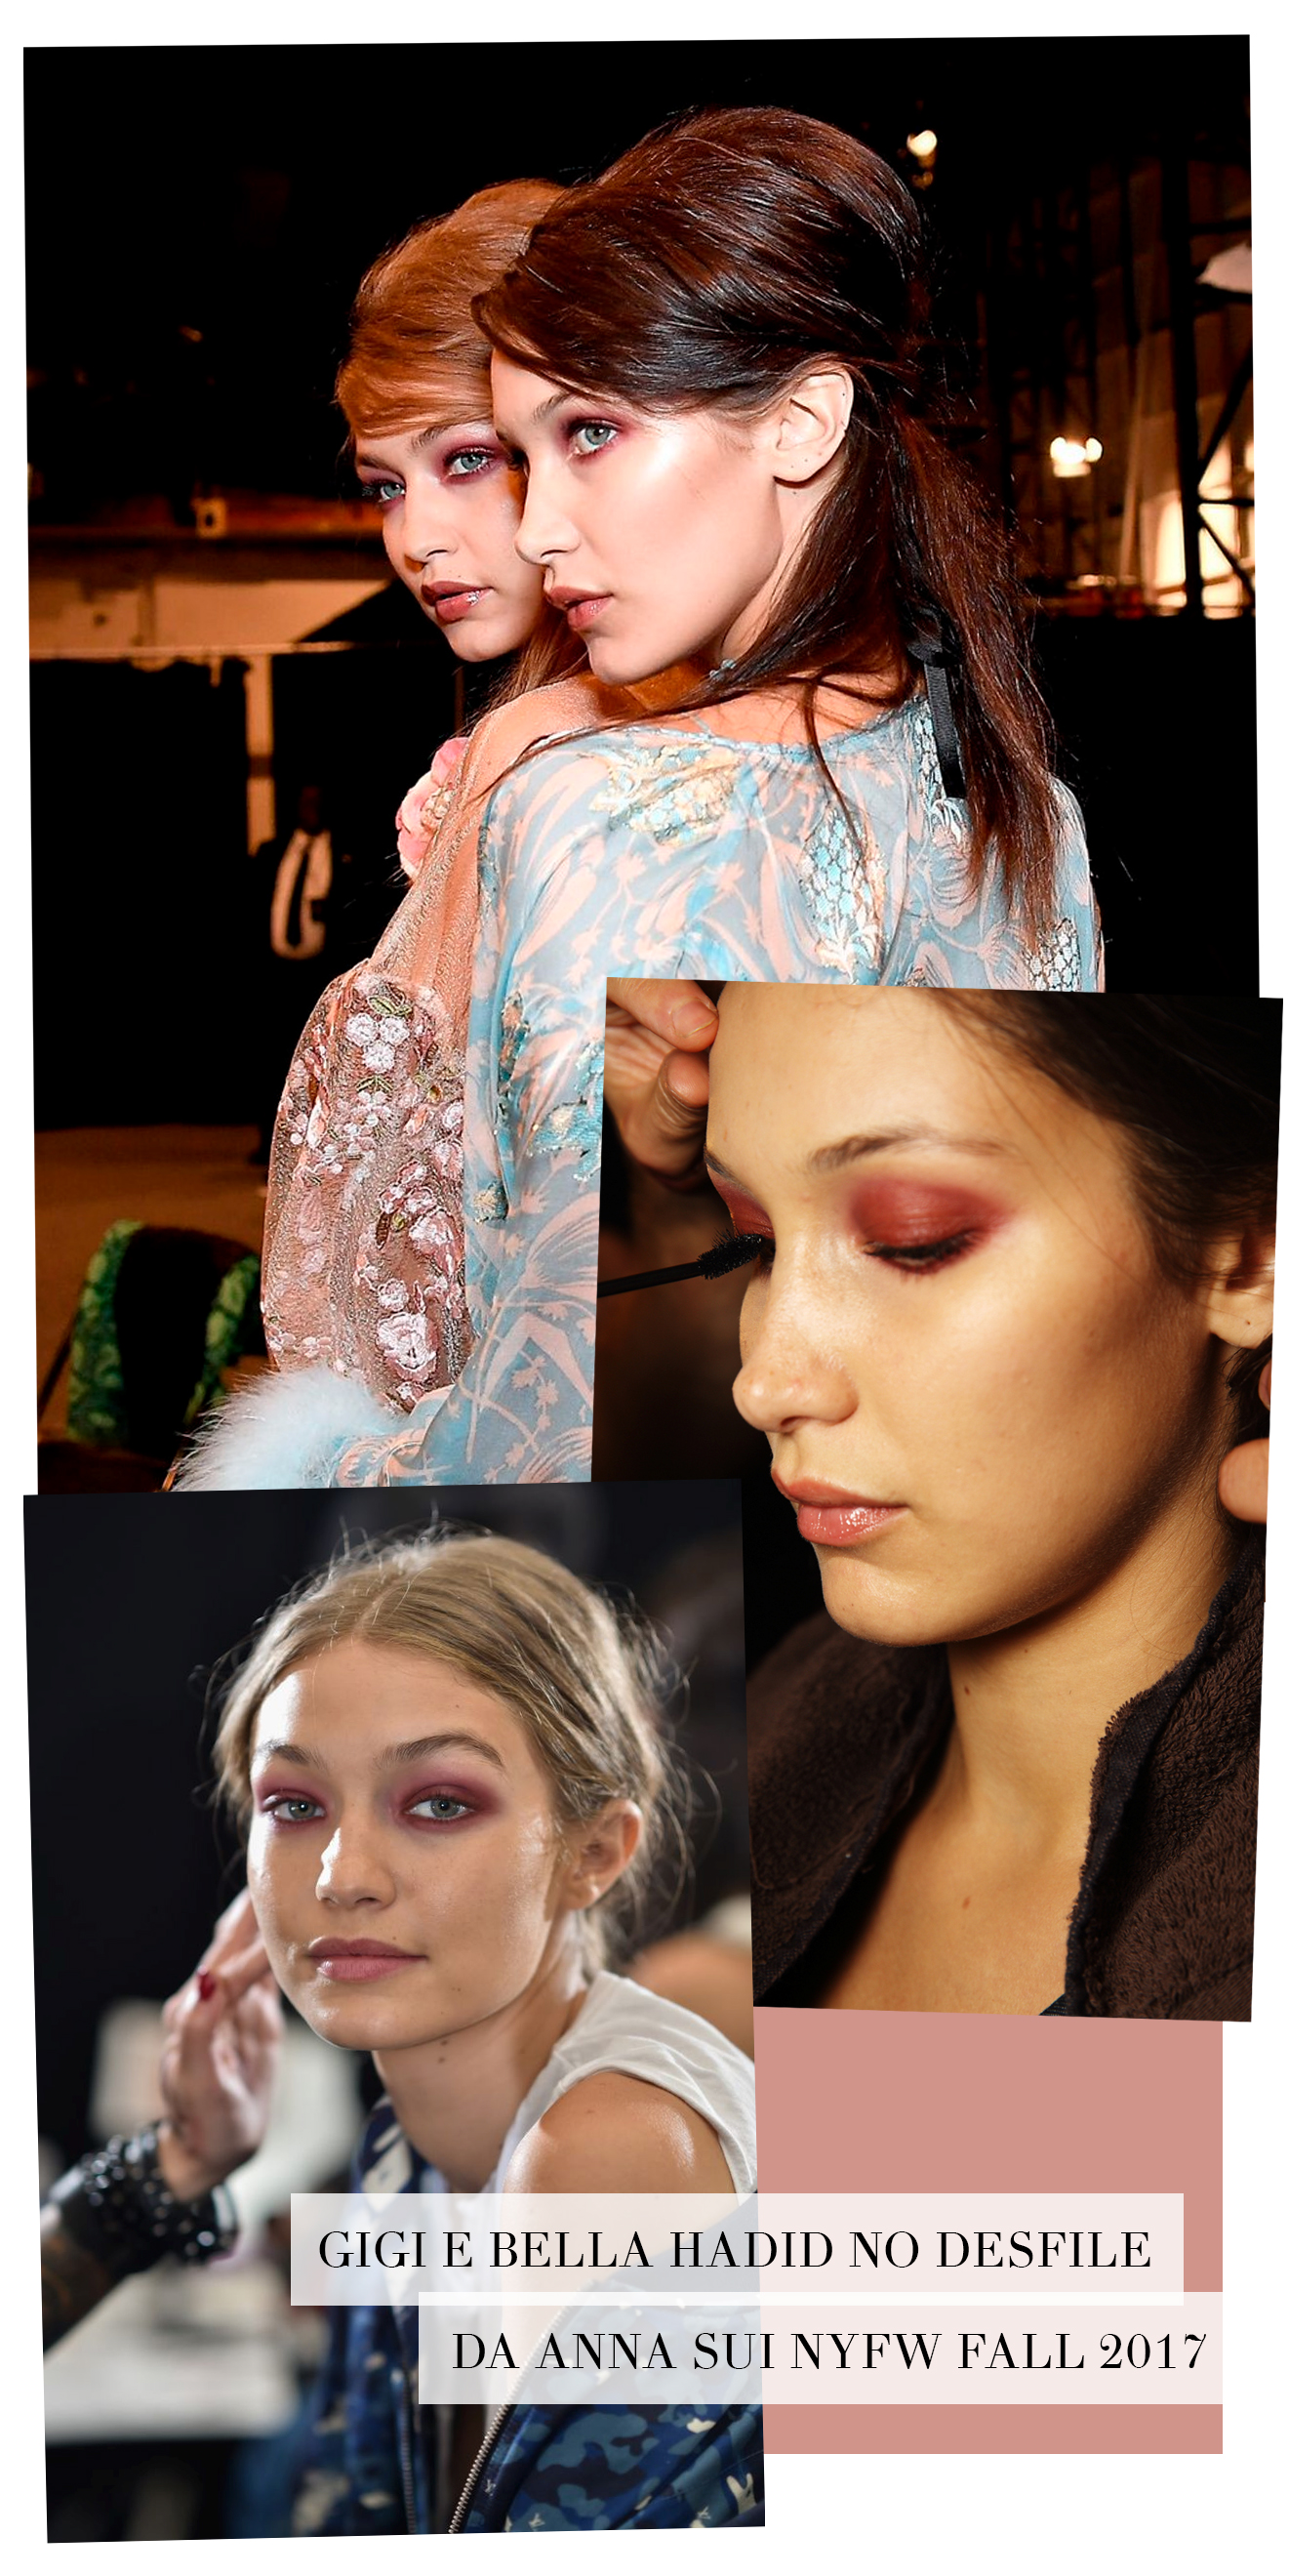 gigi bella hadid red eyeshadow